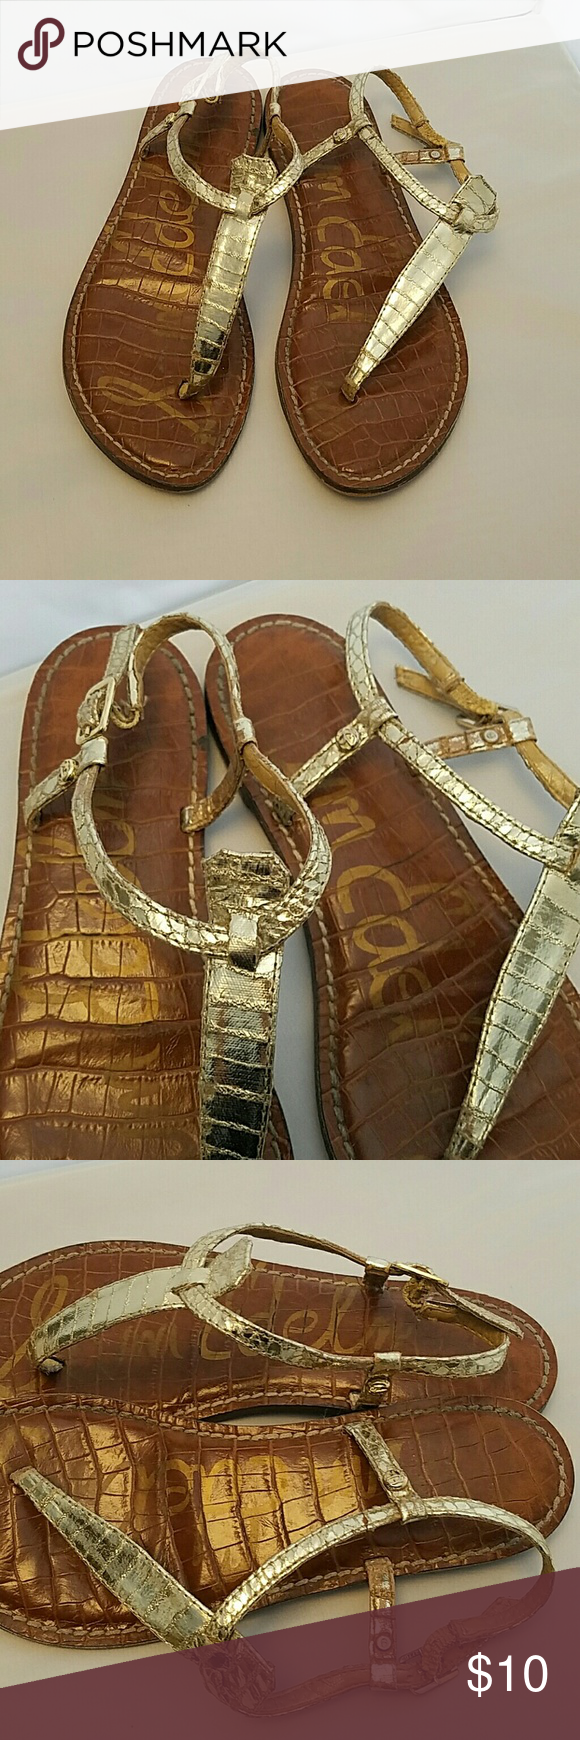 Sam Edelman Gigi Sandals Gold. Well loved but lots of life left.  Thanks and don't forget to check out my other listings! Sam Edelman Shoes Sandals